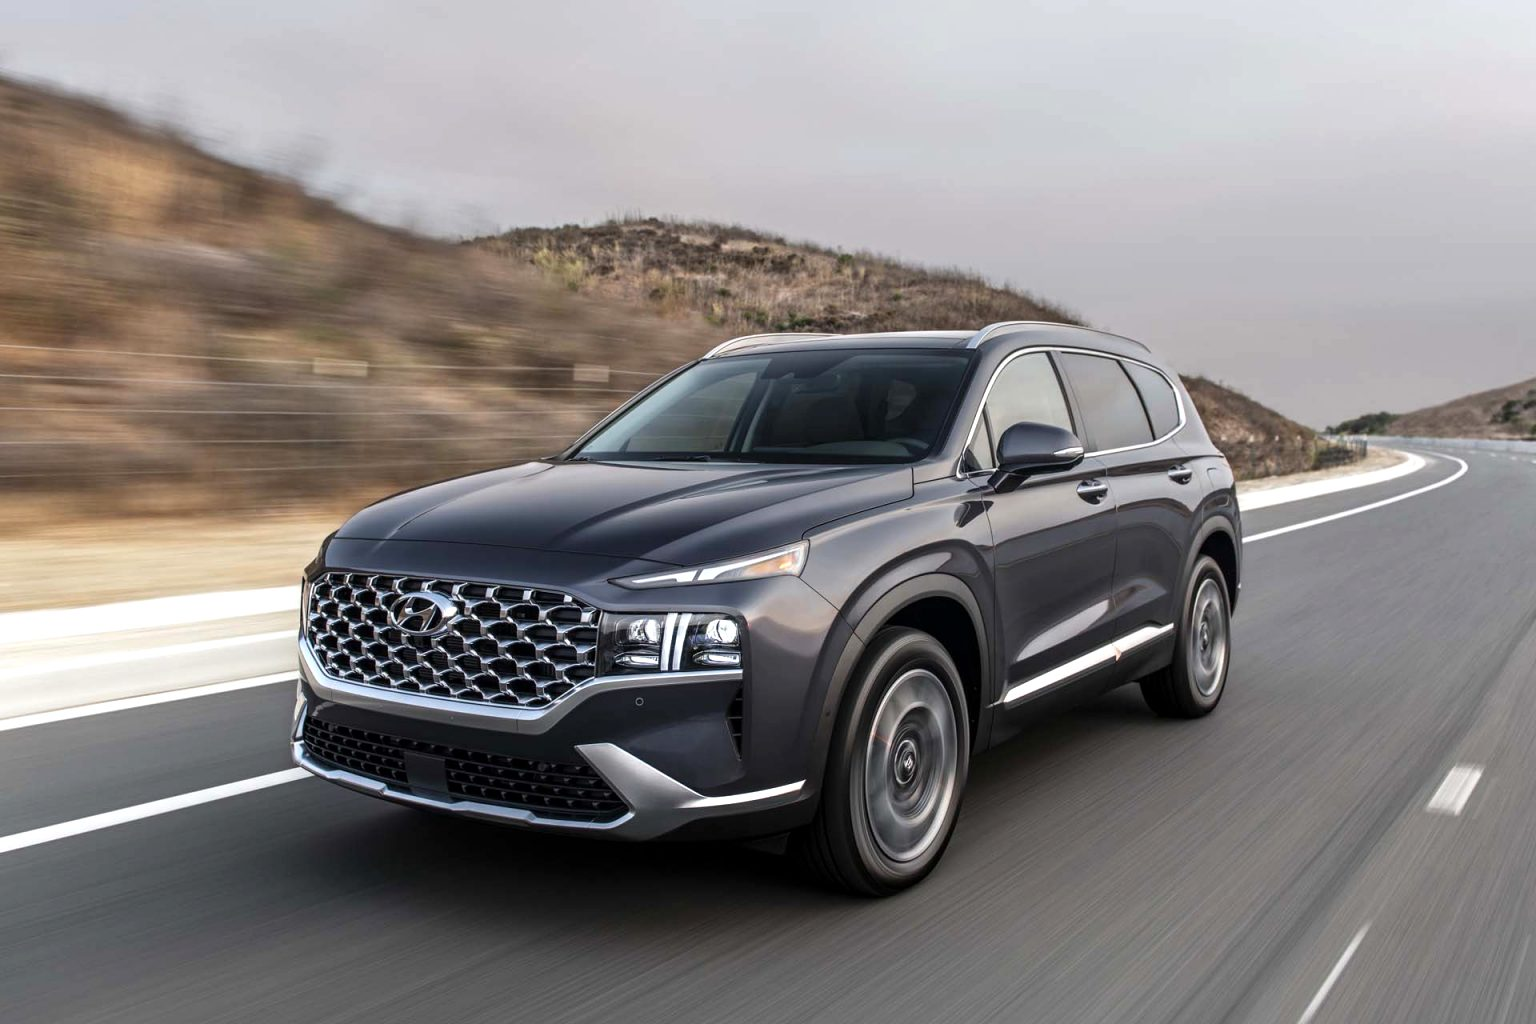 2021 hyundai jeep Pictures